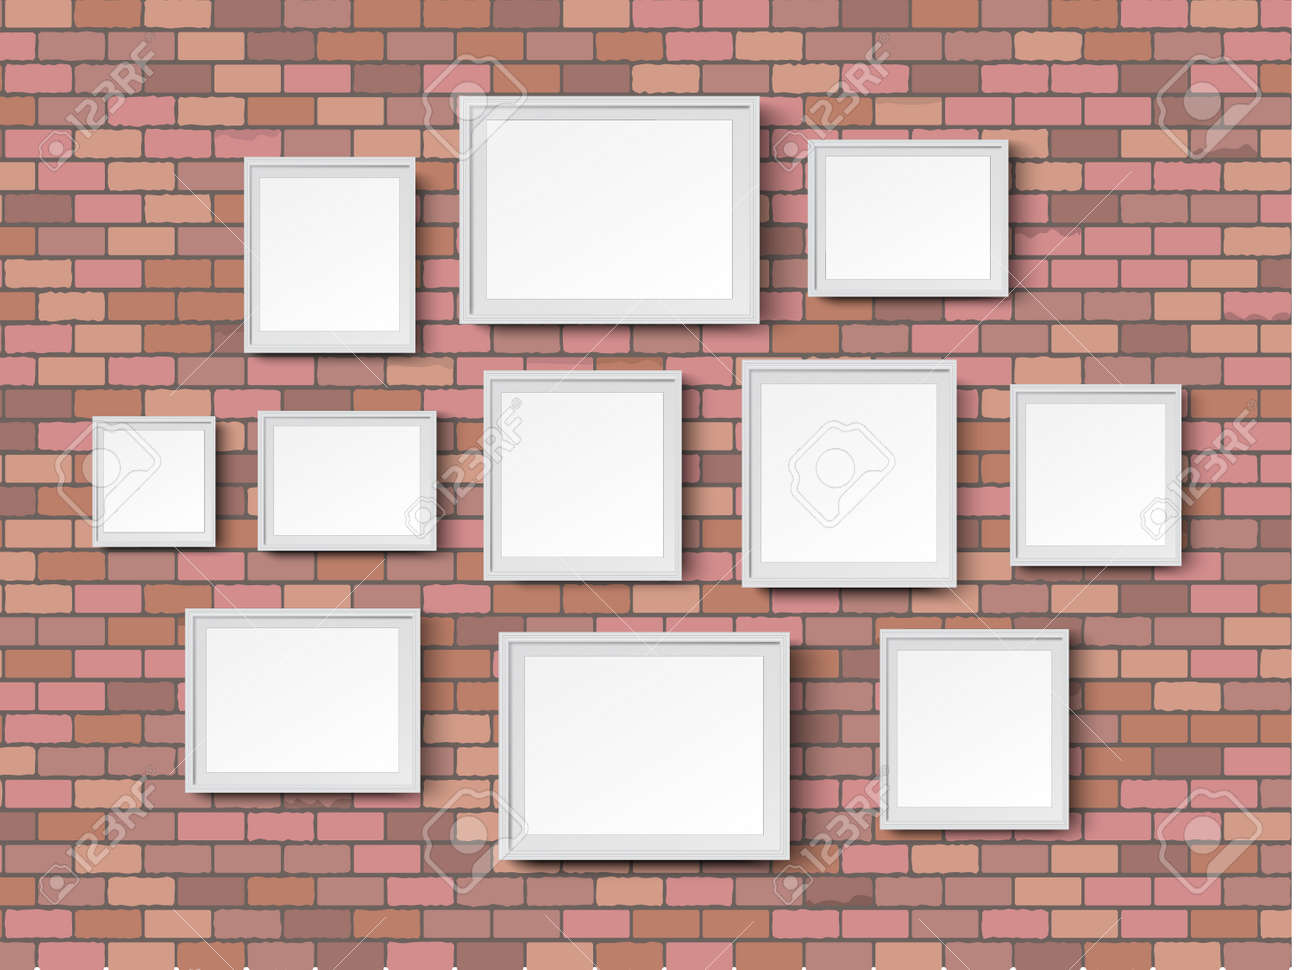 illustration various sizes picture photo frames on red bricks wall background illustration